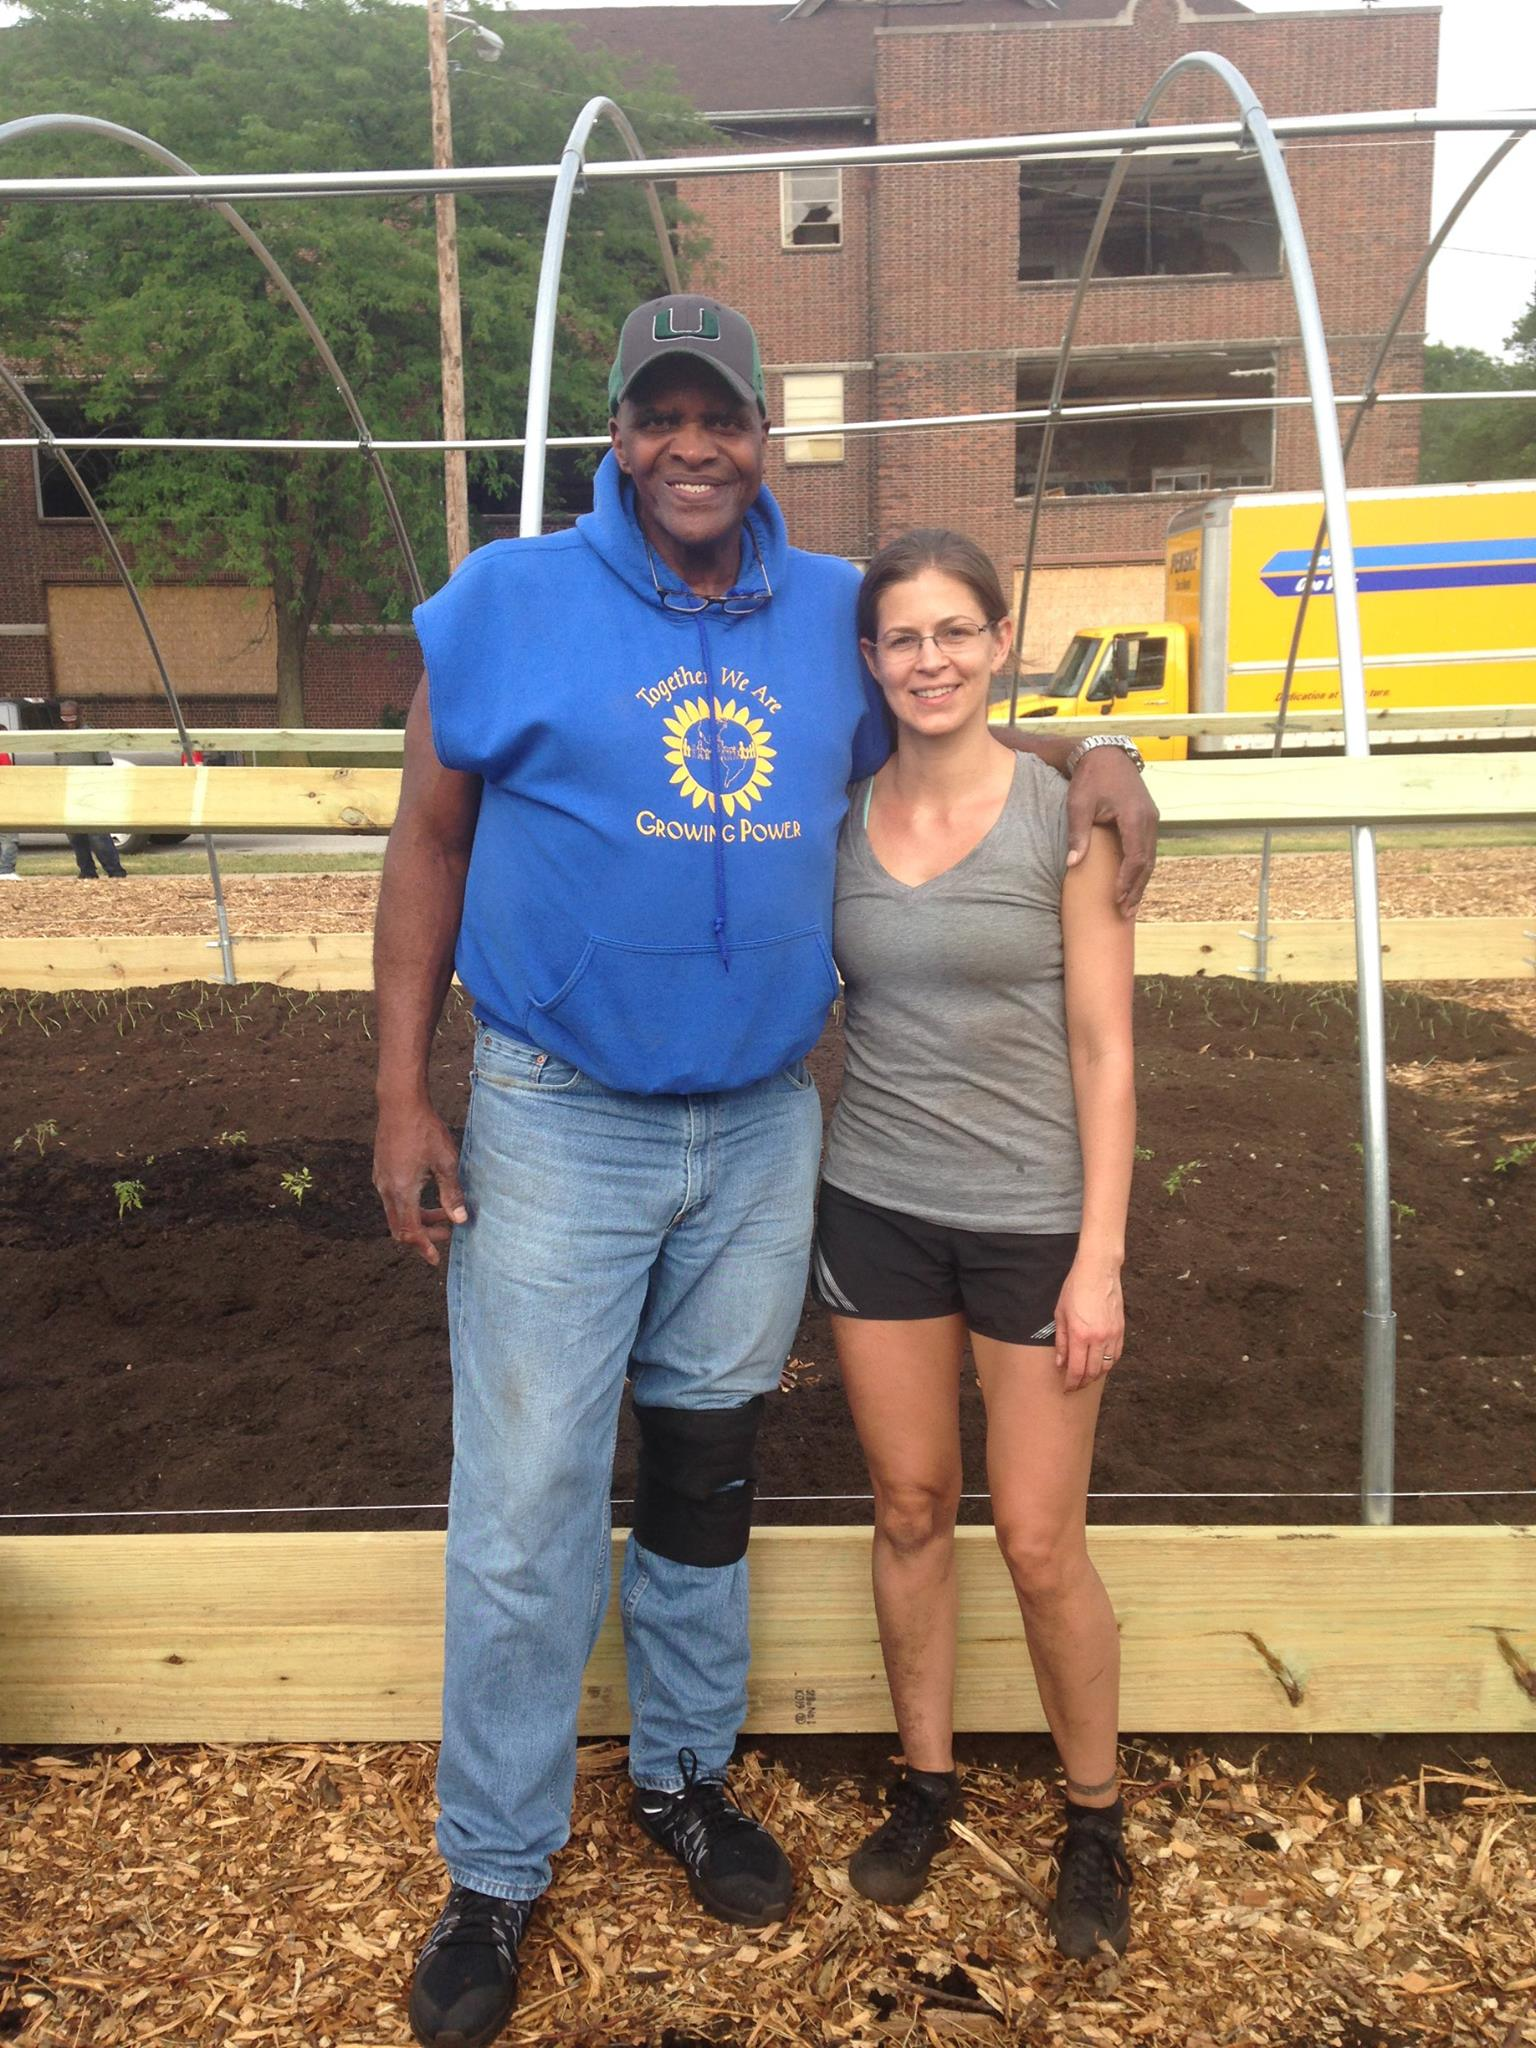 Meeting Will Allen was a highlight for all of the volunteers. He's pictured here with Council Board President Sarah Highlen.